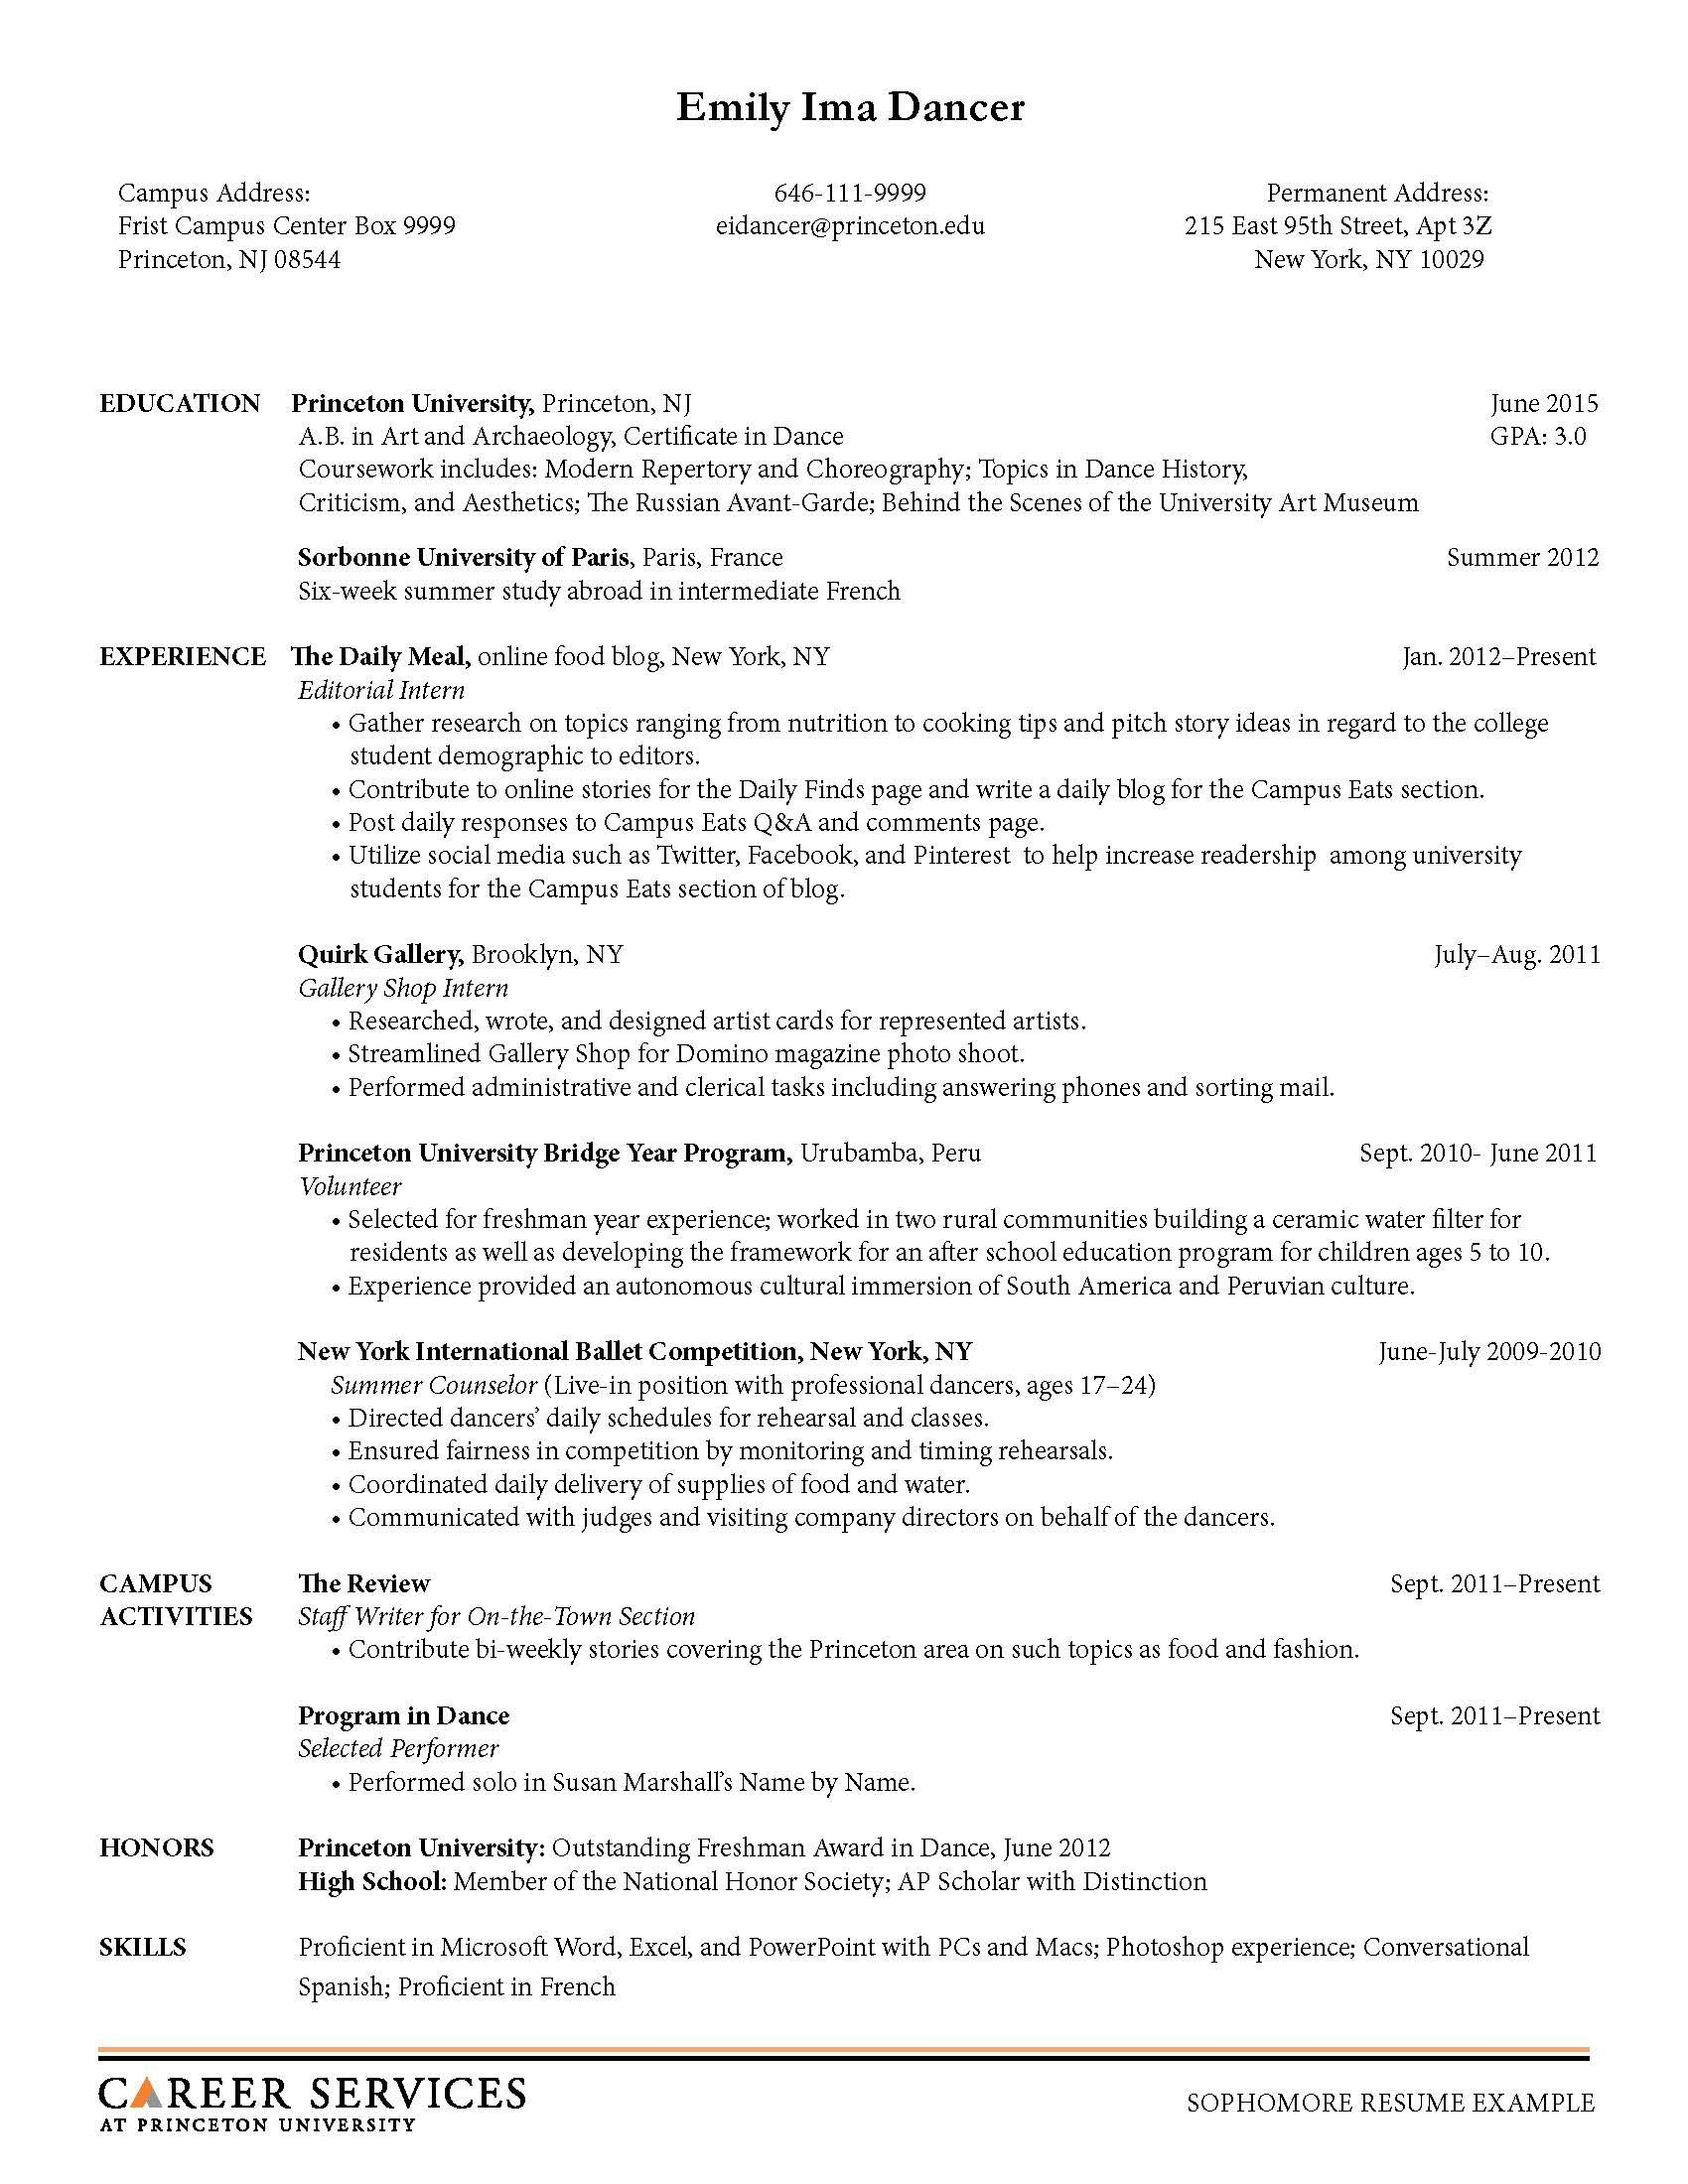 Opposenewapstandardsus  Winning Sample Resume Resume And Career On Pinterest With Extraordinary Dental Hygiene Resumes Besides Free Resume Building Furthermore Web Developer Resume Sample With Amazing Resume Preparation Service Also Software Developer Resume Template In Addition A Good Resume Example And Hospital Volunteer Resume As Well As Resume Objective For Any Job Additionally Resume Templates Free Printable From Pinterestcom With Opposenewapstandardsus  Extraordinary Sample Resume Resume And Career On Pinterest With Amazing Dental Hygiene Resumes Besides Free Resume Building Furthermore Web Developer Resume Sample And Winning Resume Preparation Service Also Software Developer Resume Template In Addition A Good Resume Example From Pinterestcom